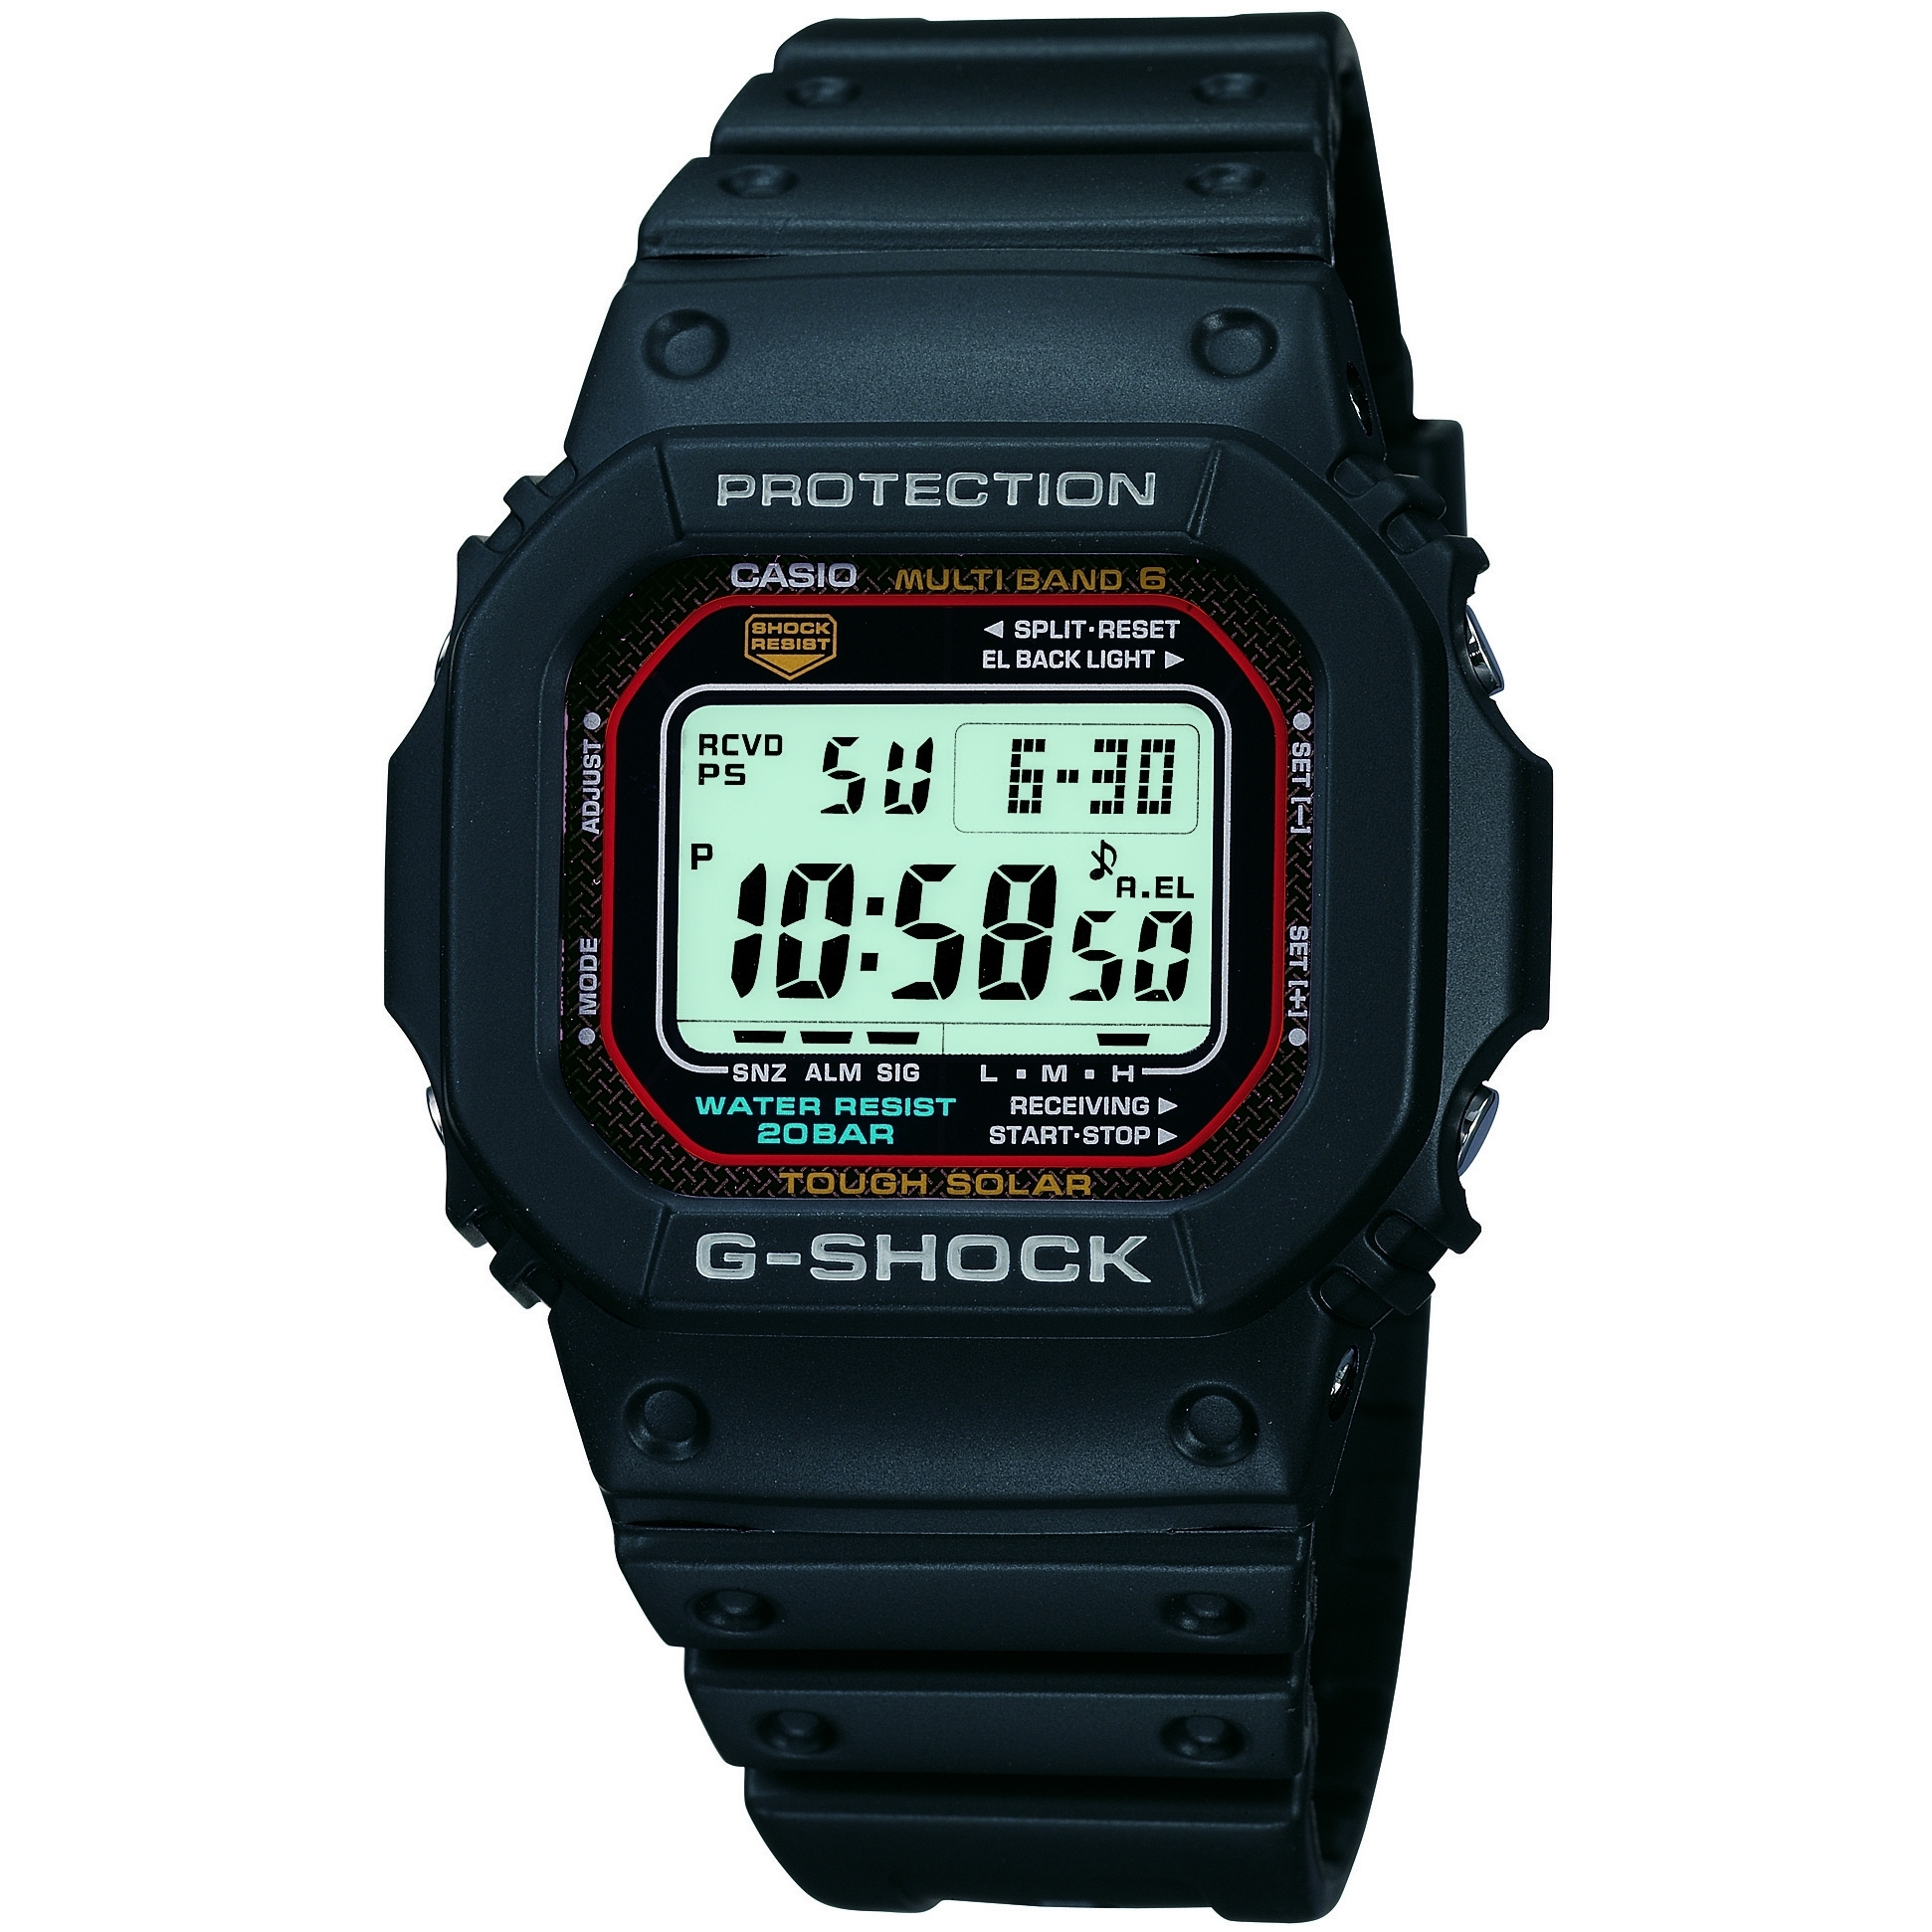 fda90dd7d Gents Casio G-Shock Alarm Chronograph Watch (GW-M5610-1ER) | WatchShop.com™